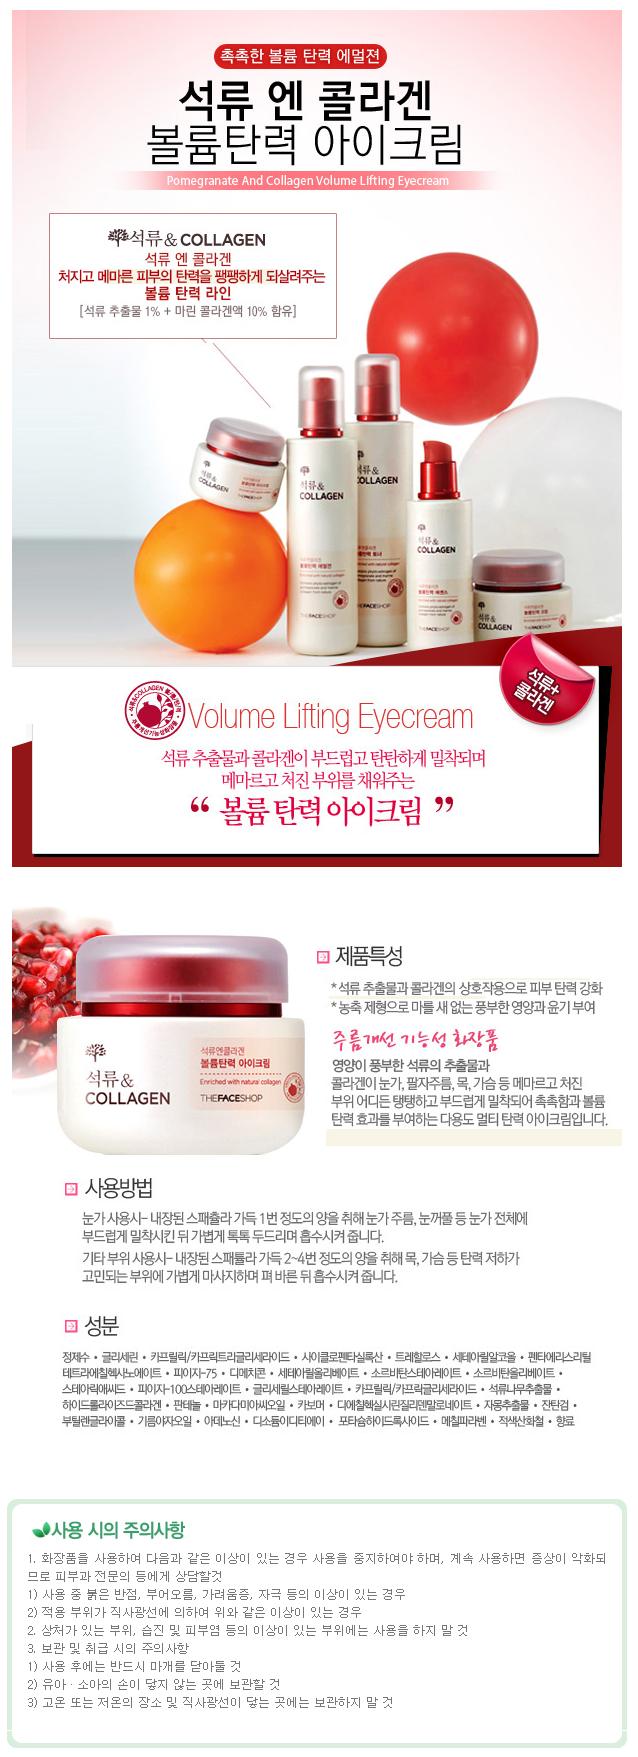 The Face Shop Collagen Pomegranate Pack review – 8thdaybeauty